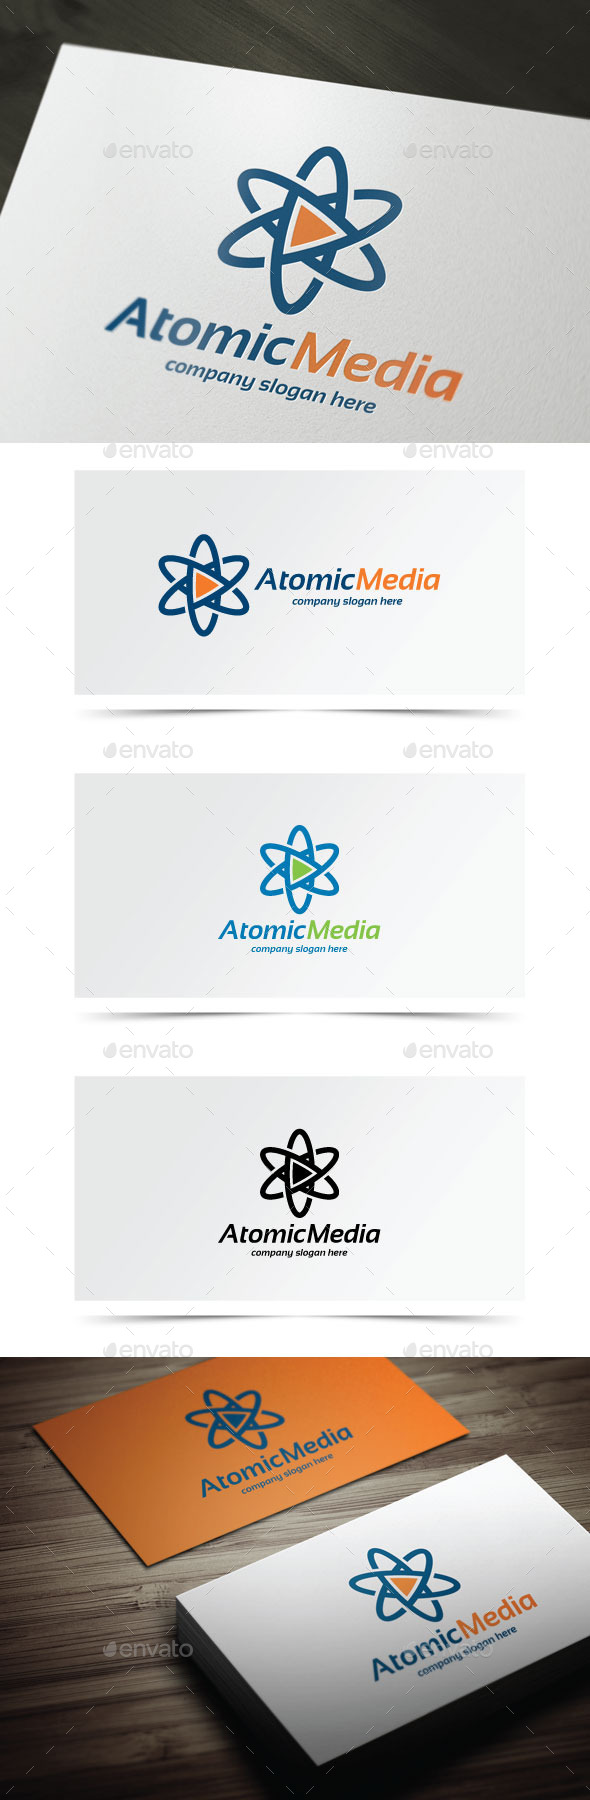 Atomic Media - Symbols Logo Templates